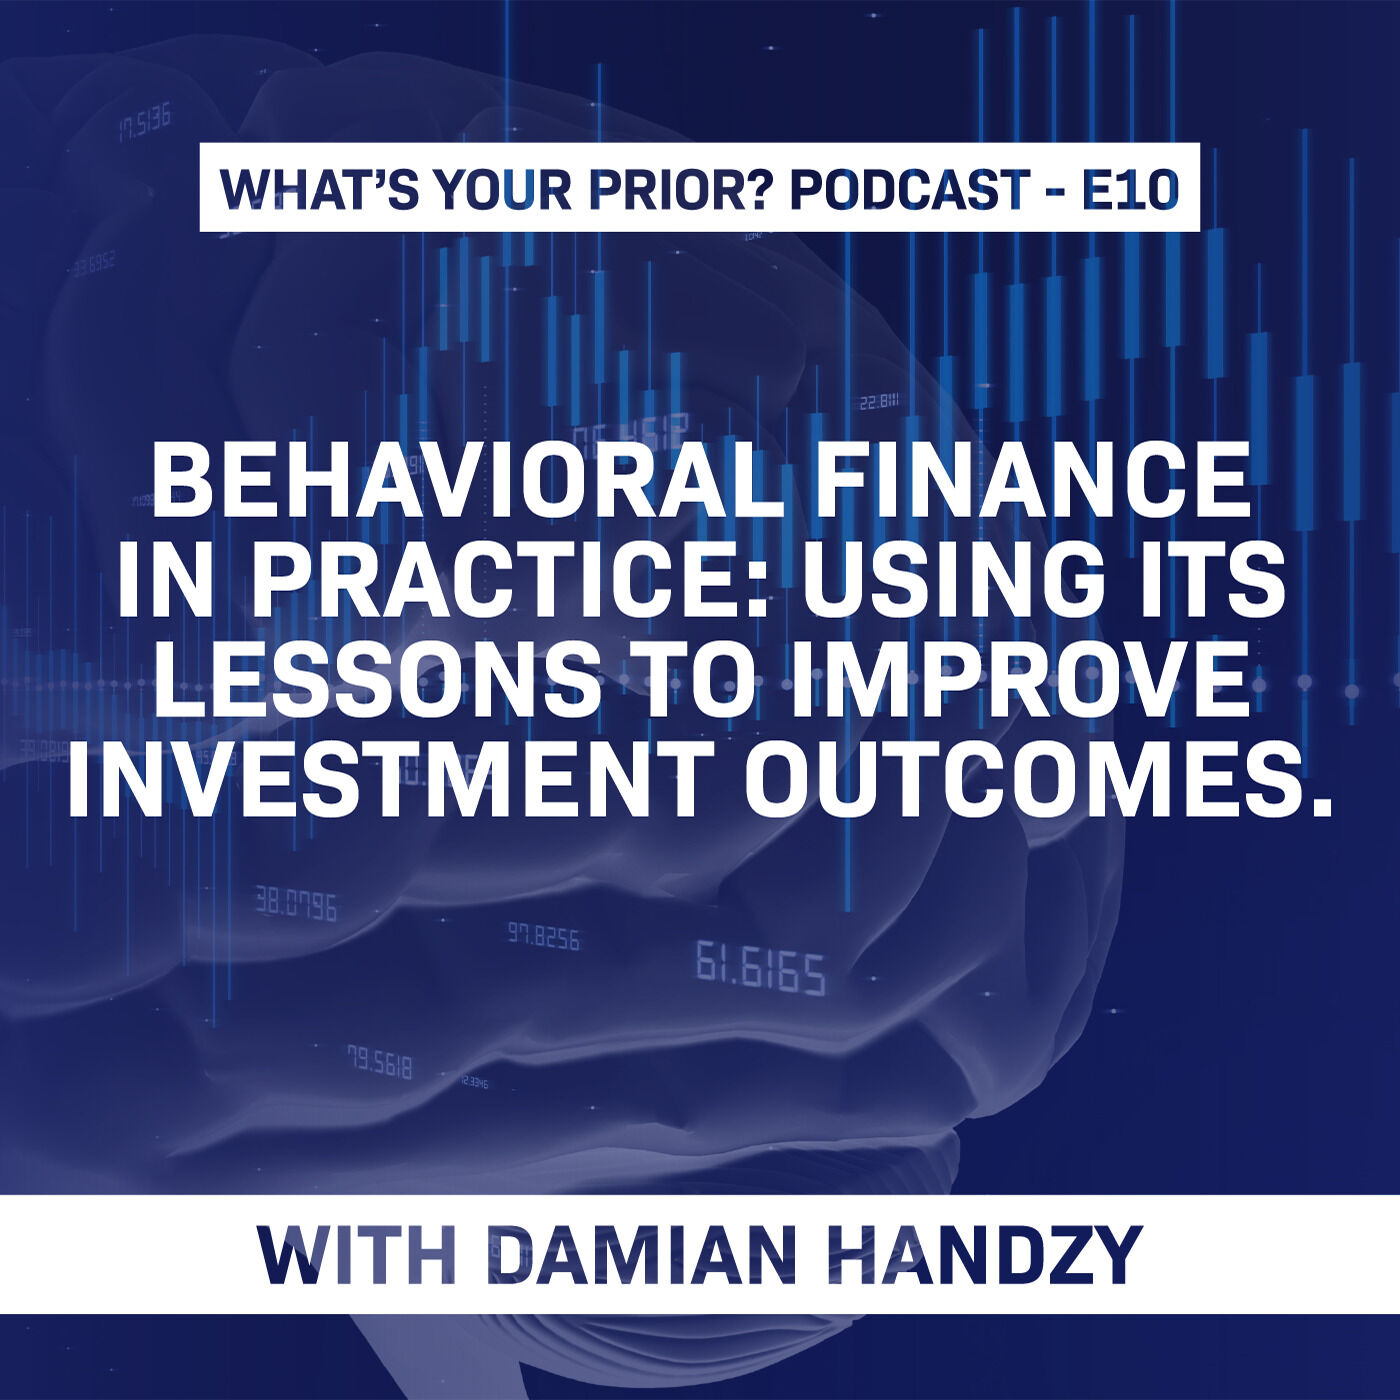 Behavioral Finance in Practice: using its lessons to improve investment outcomes.